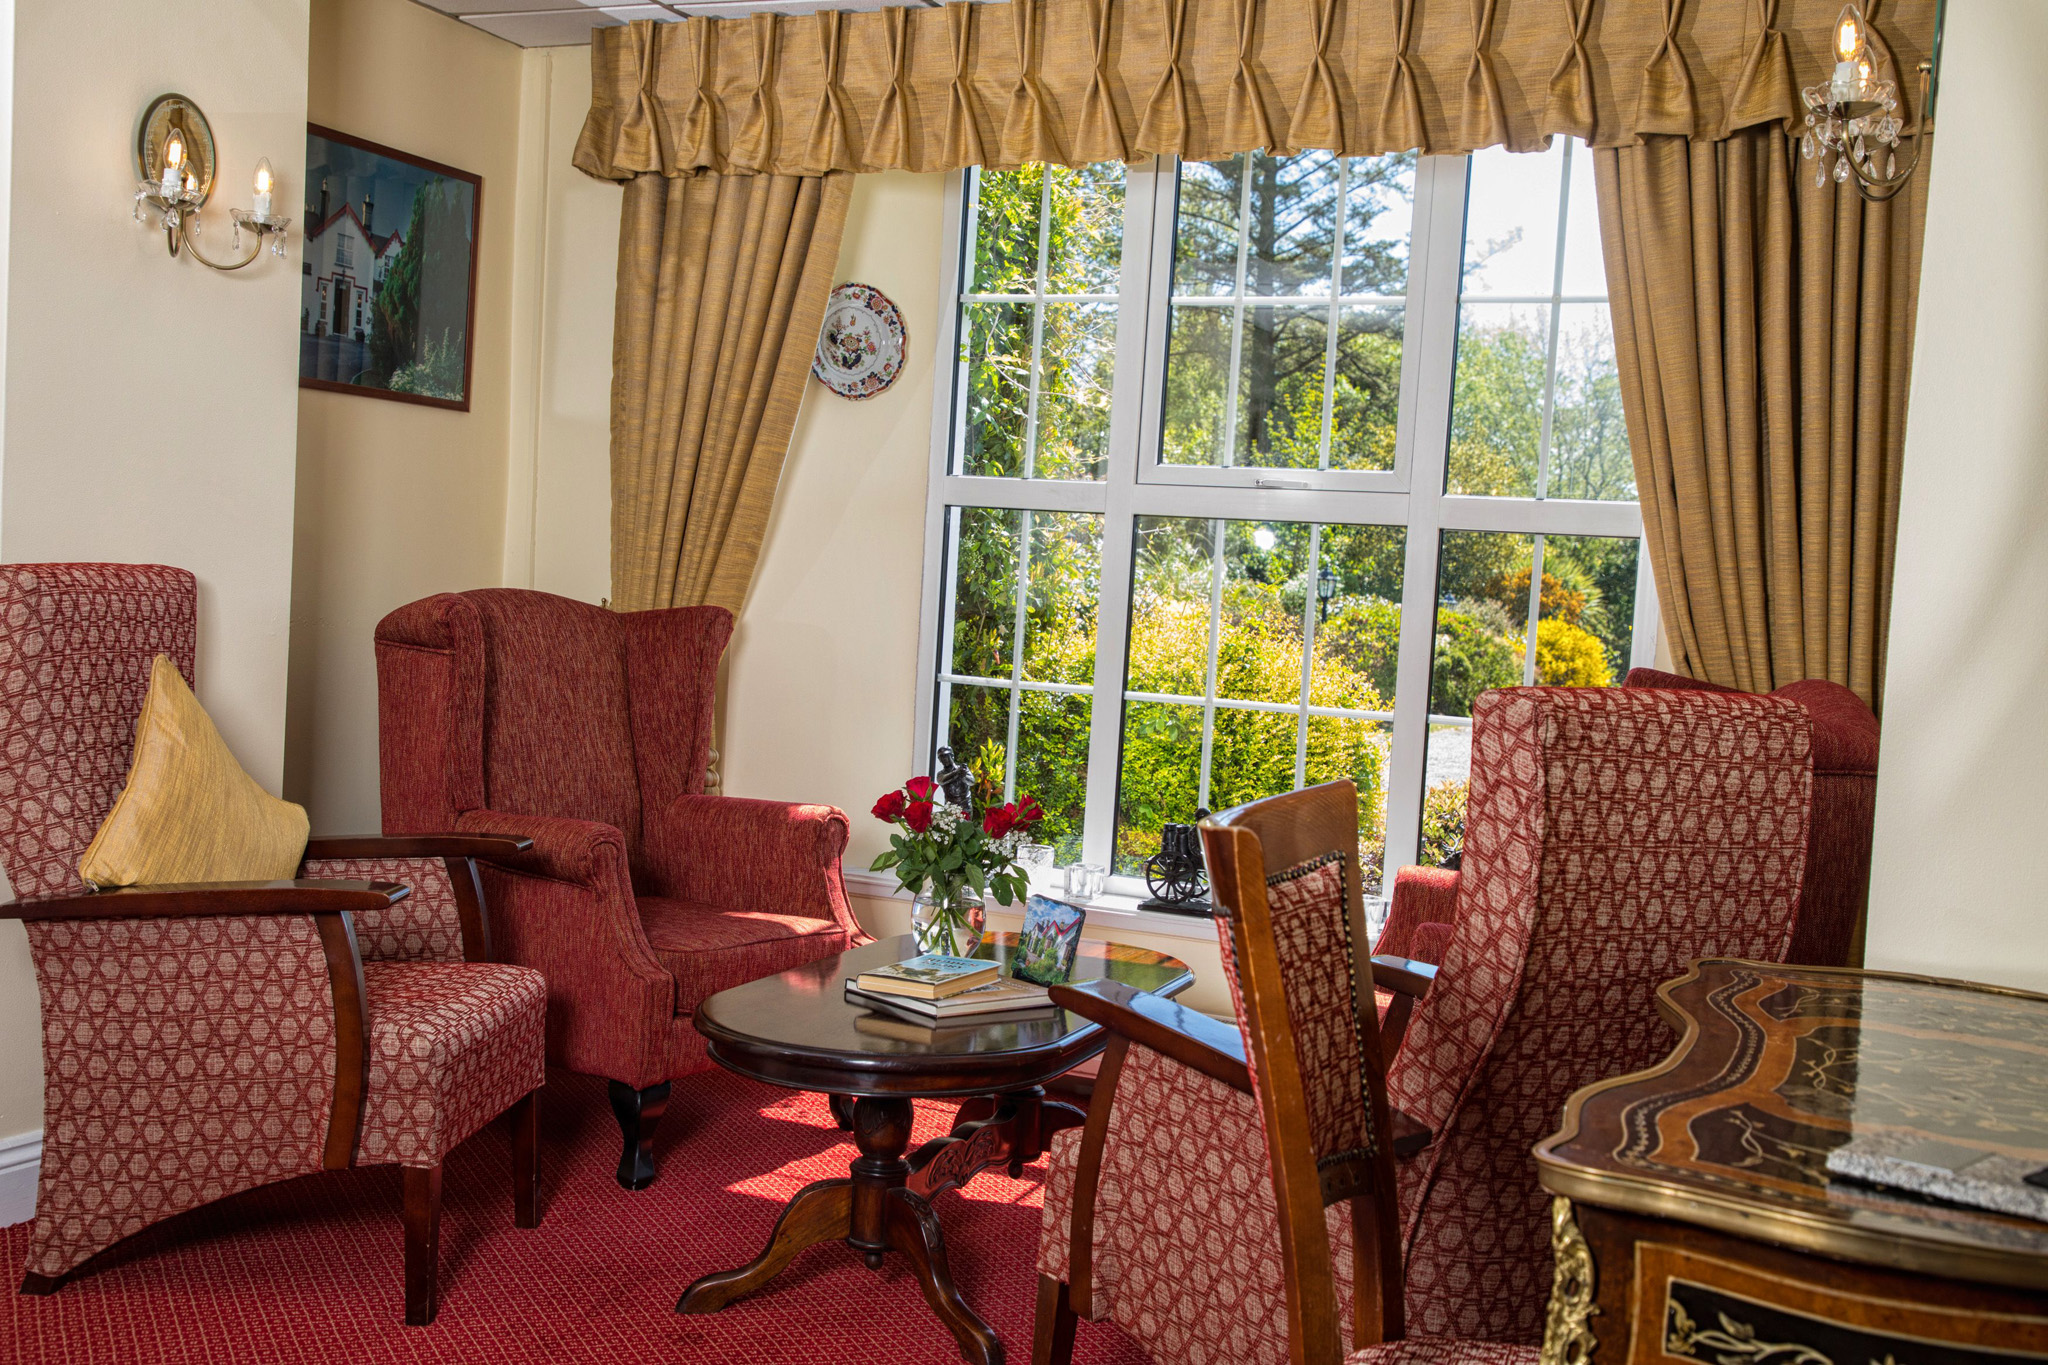 Killeen House Hotel | Aghadoe , Lakes of Killarney, Co Kerry | Photos 5